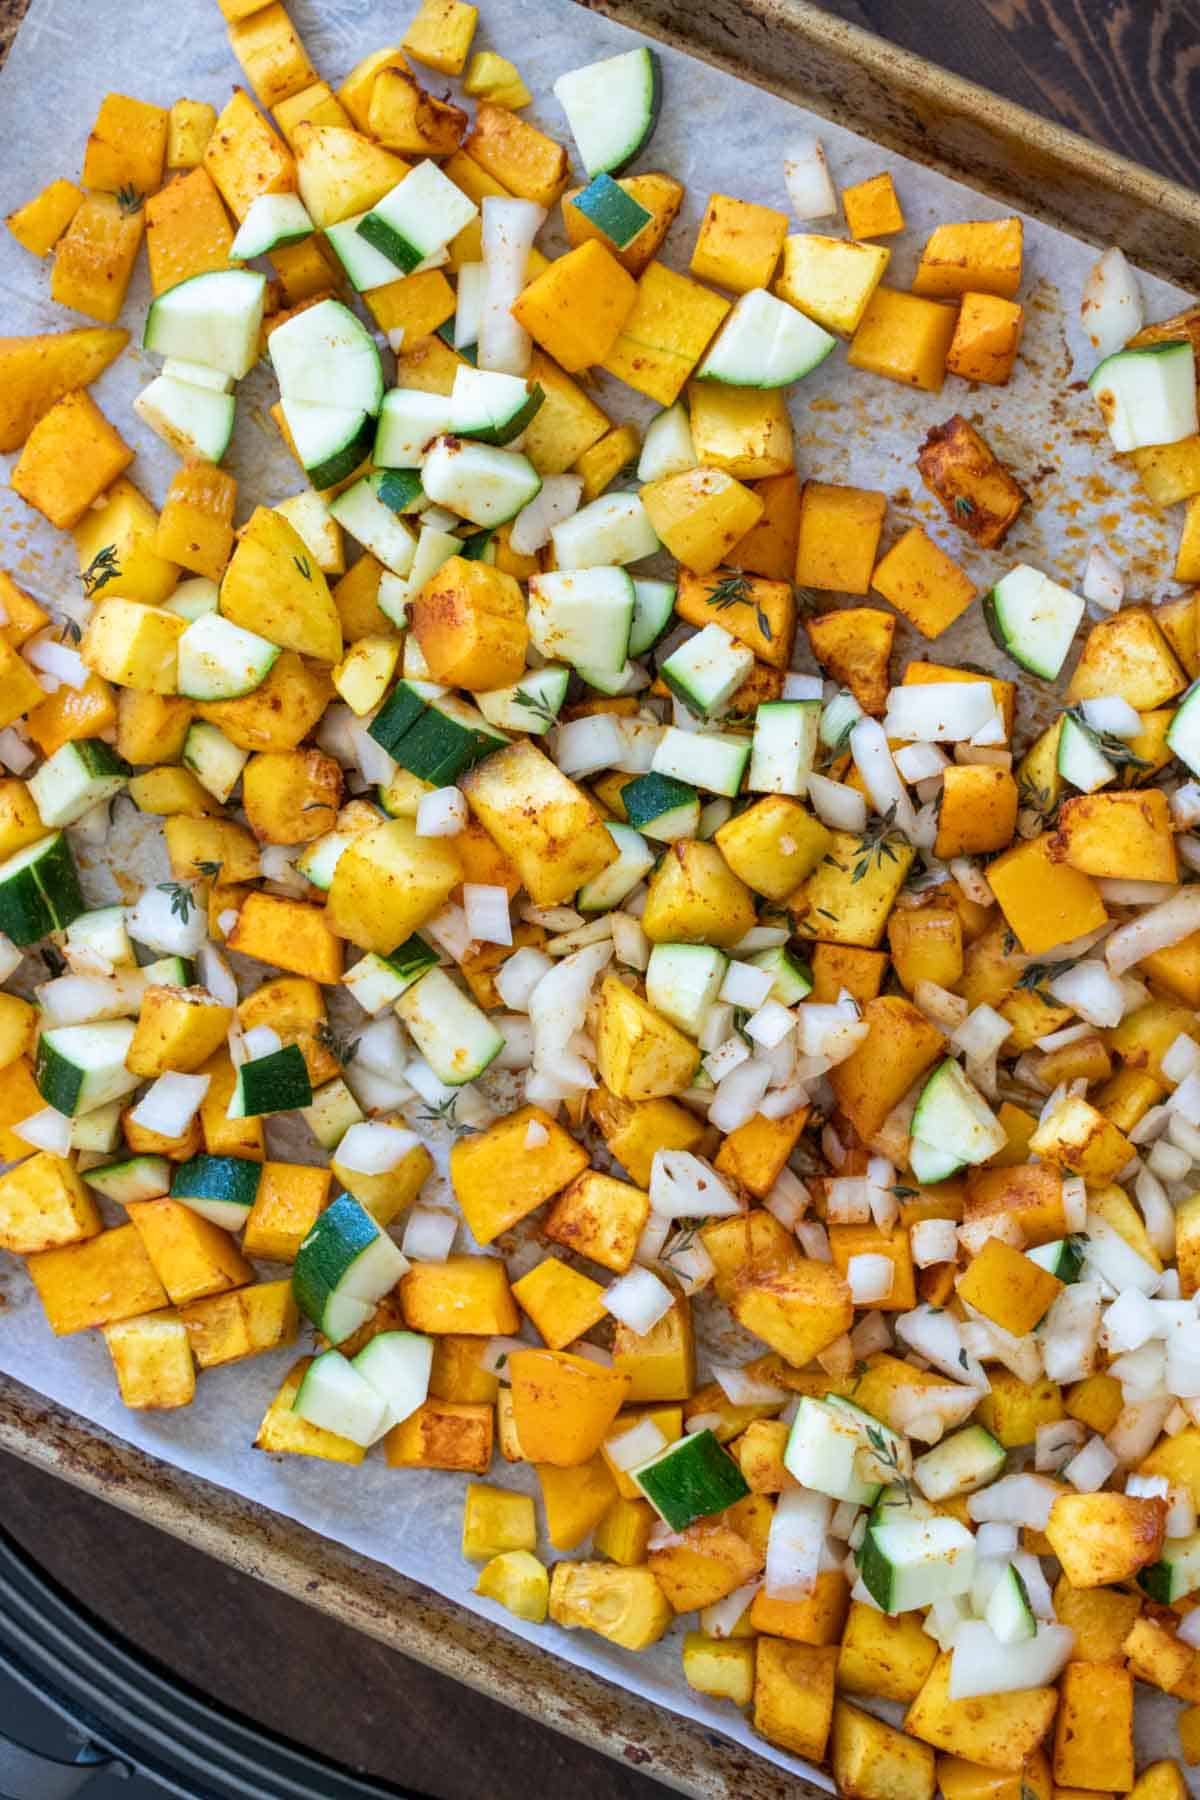 Cut pieces of zucchini and butternut squash on a baking sheet with spices